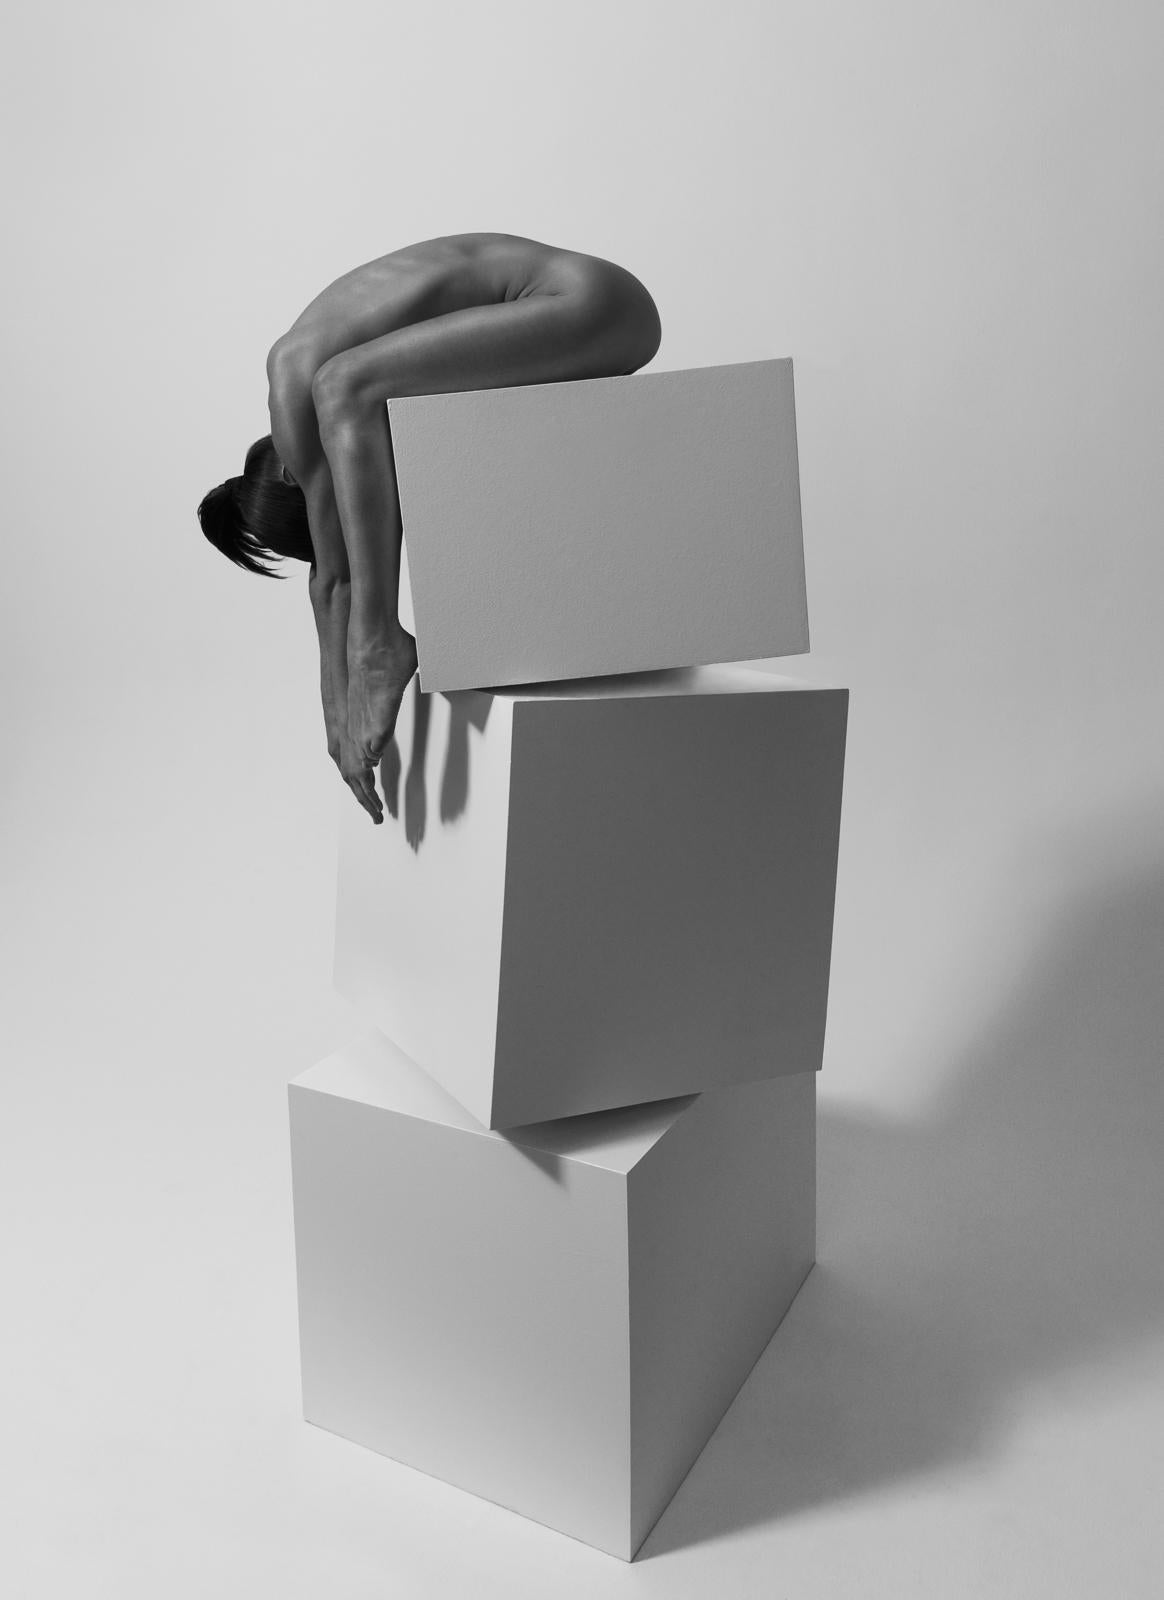 154.08.11, Dancing the Cubes series (black and White nude photography)